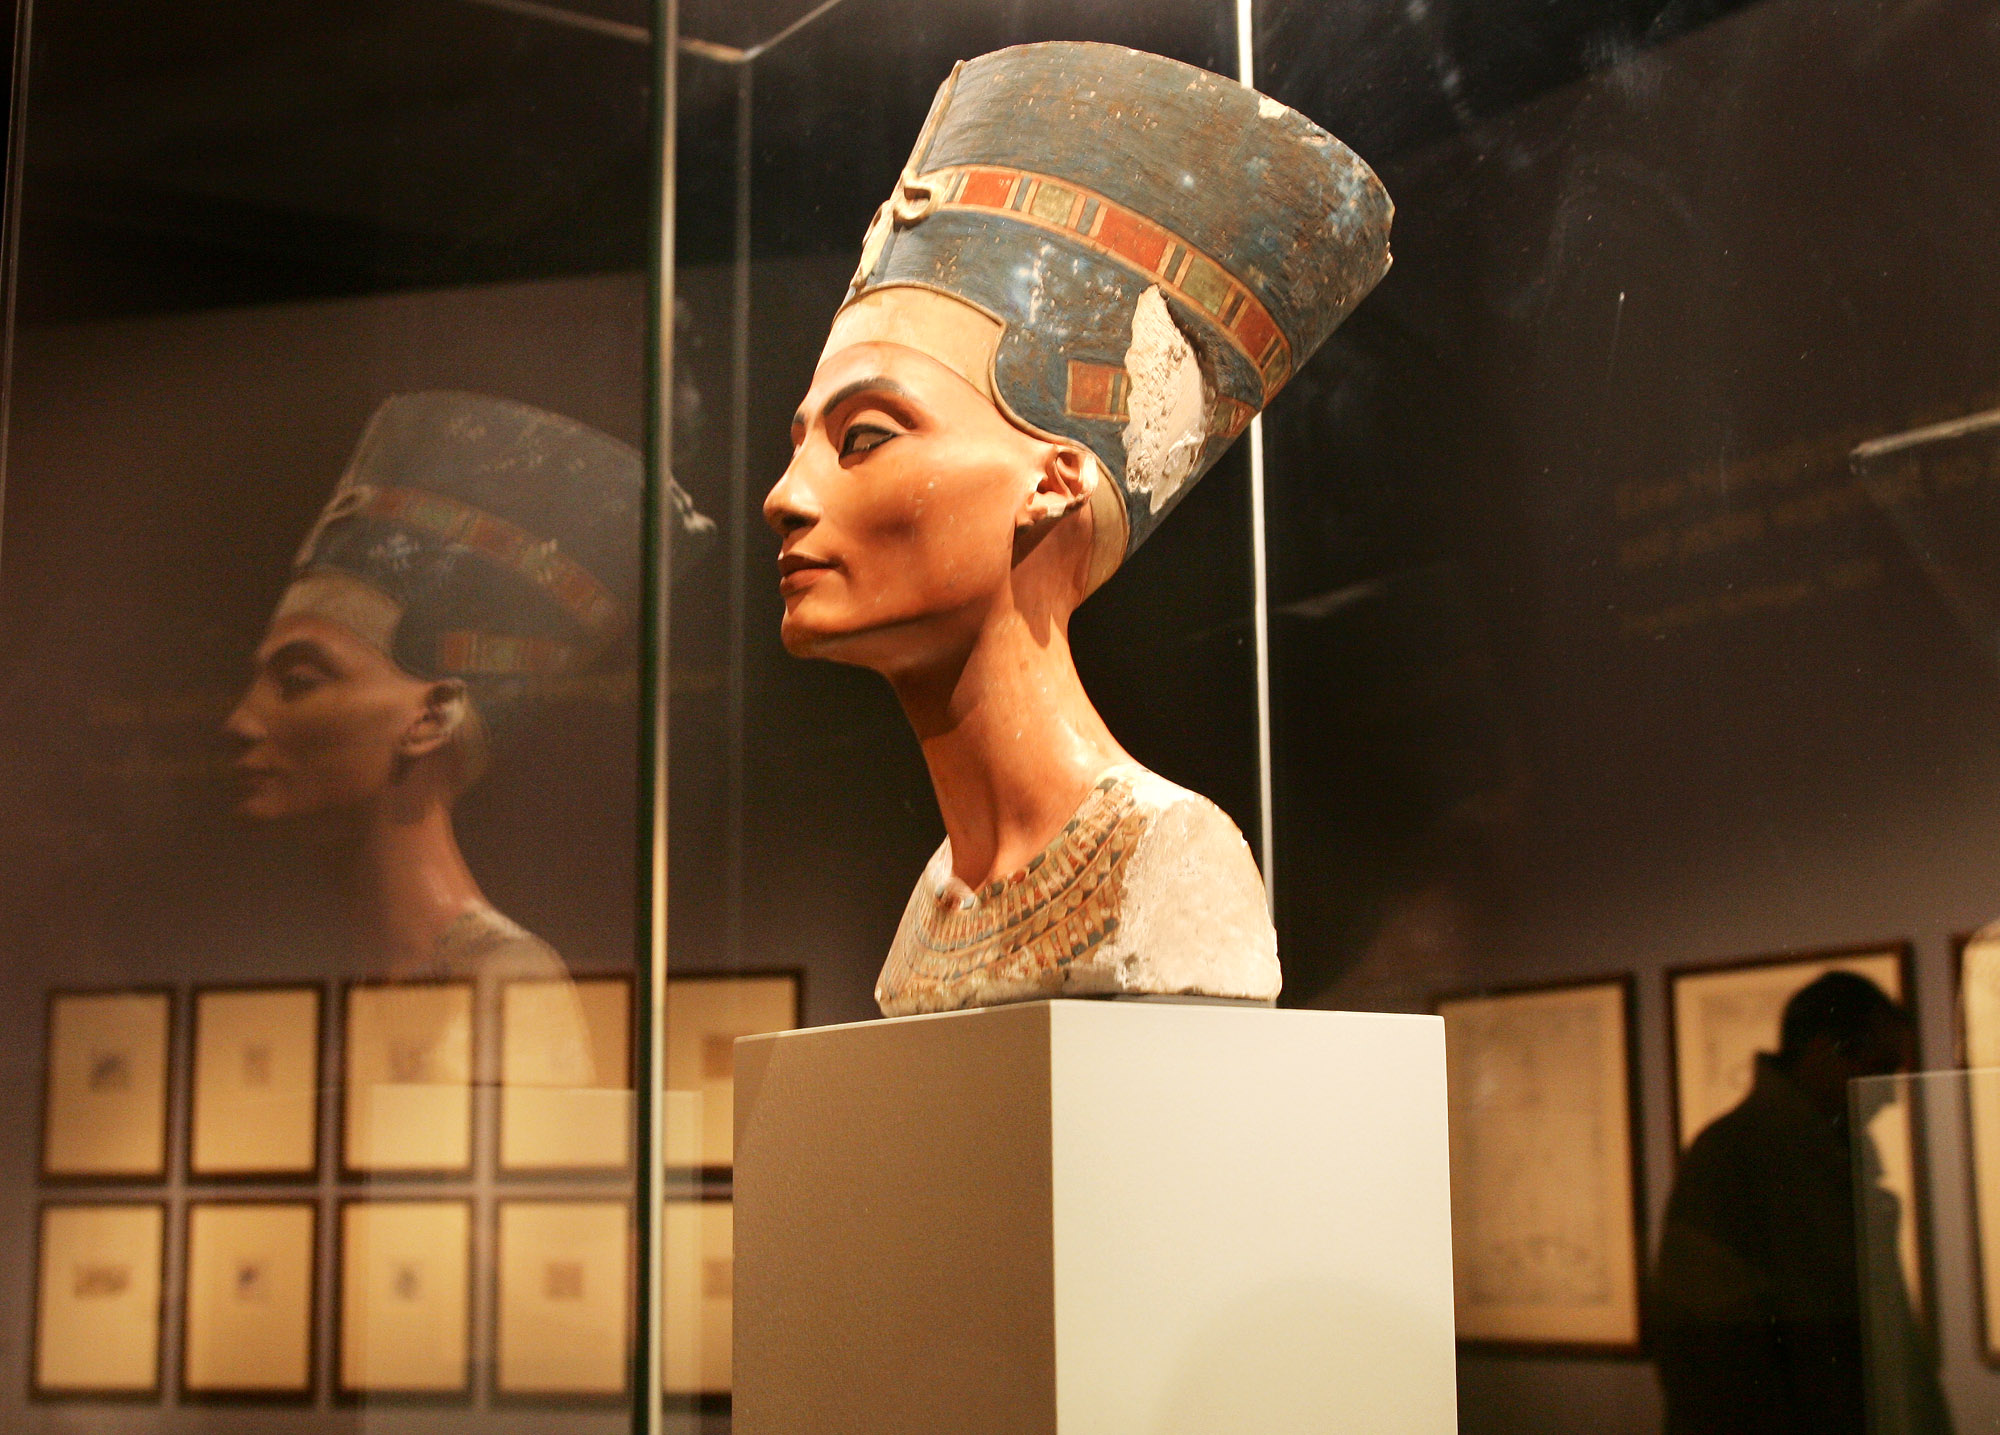 The Curse Of King Tuts Tomb Torrent: Is An Egyptian Queen Buried Behind A Secret Door